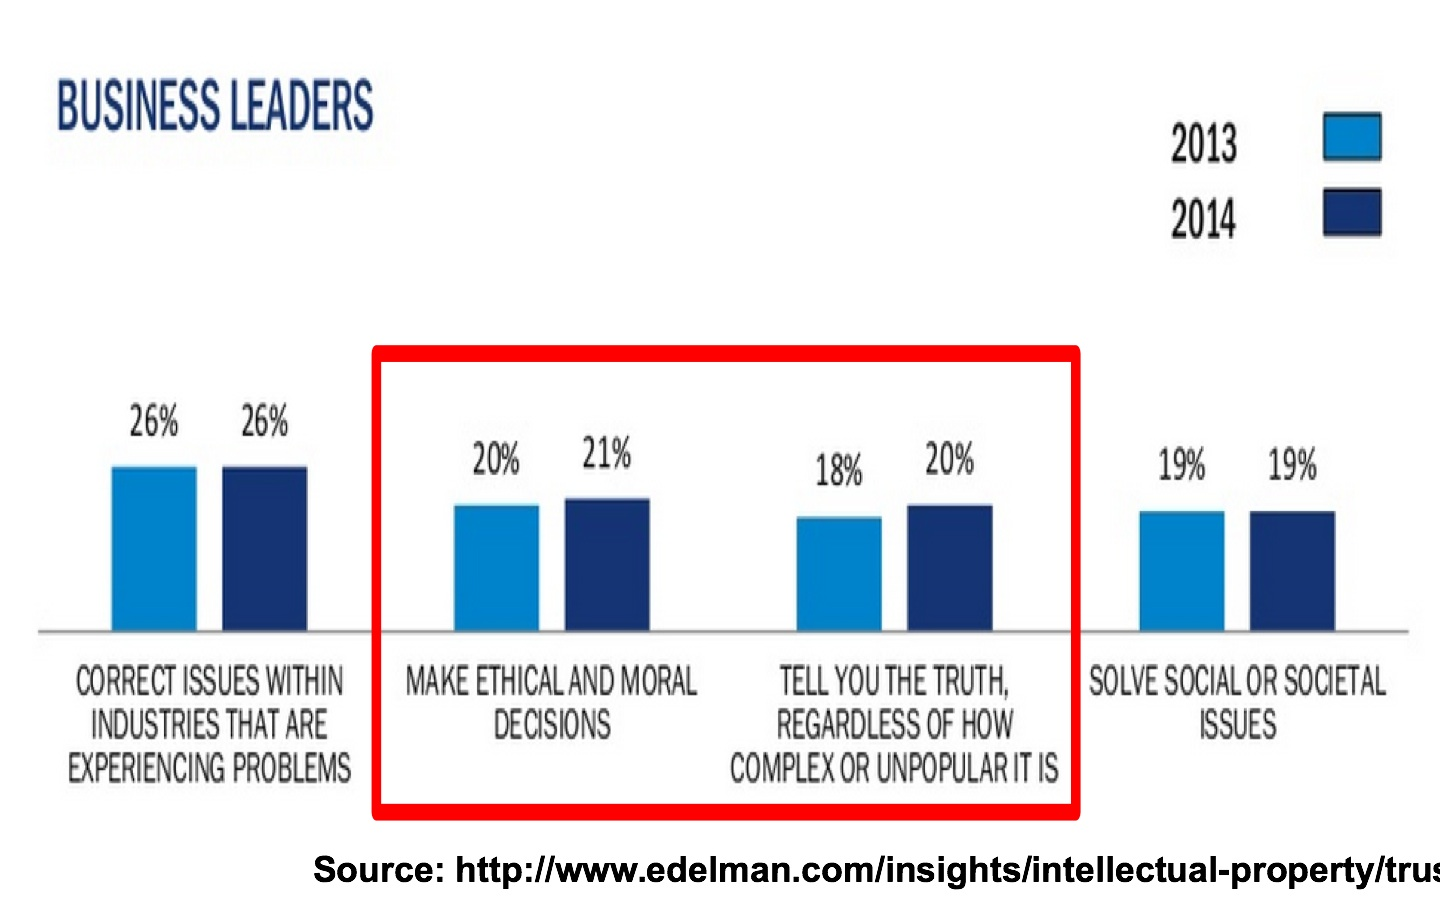 2014 edelman trust barometer-Business Leaders 2013 vs 2014-2